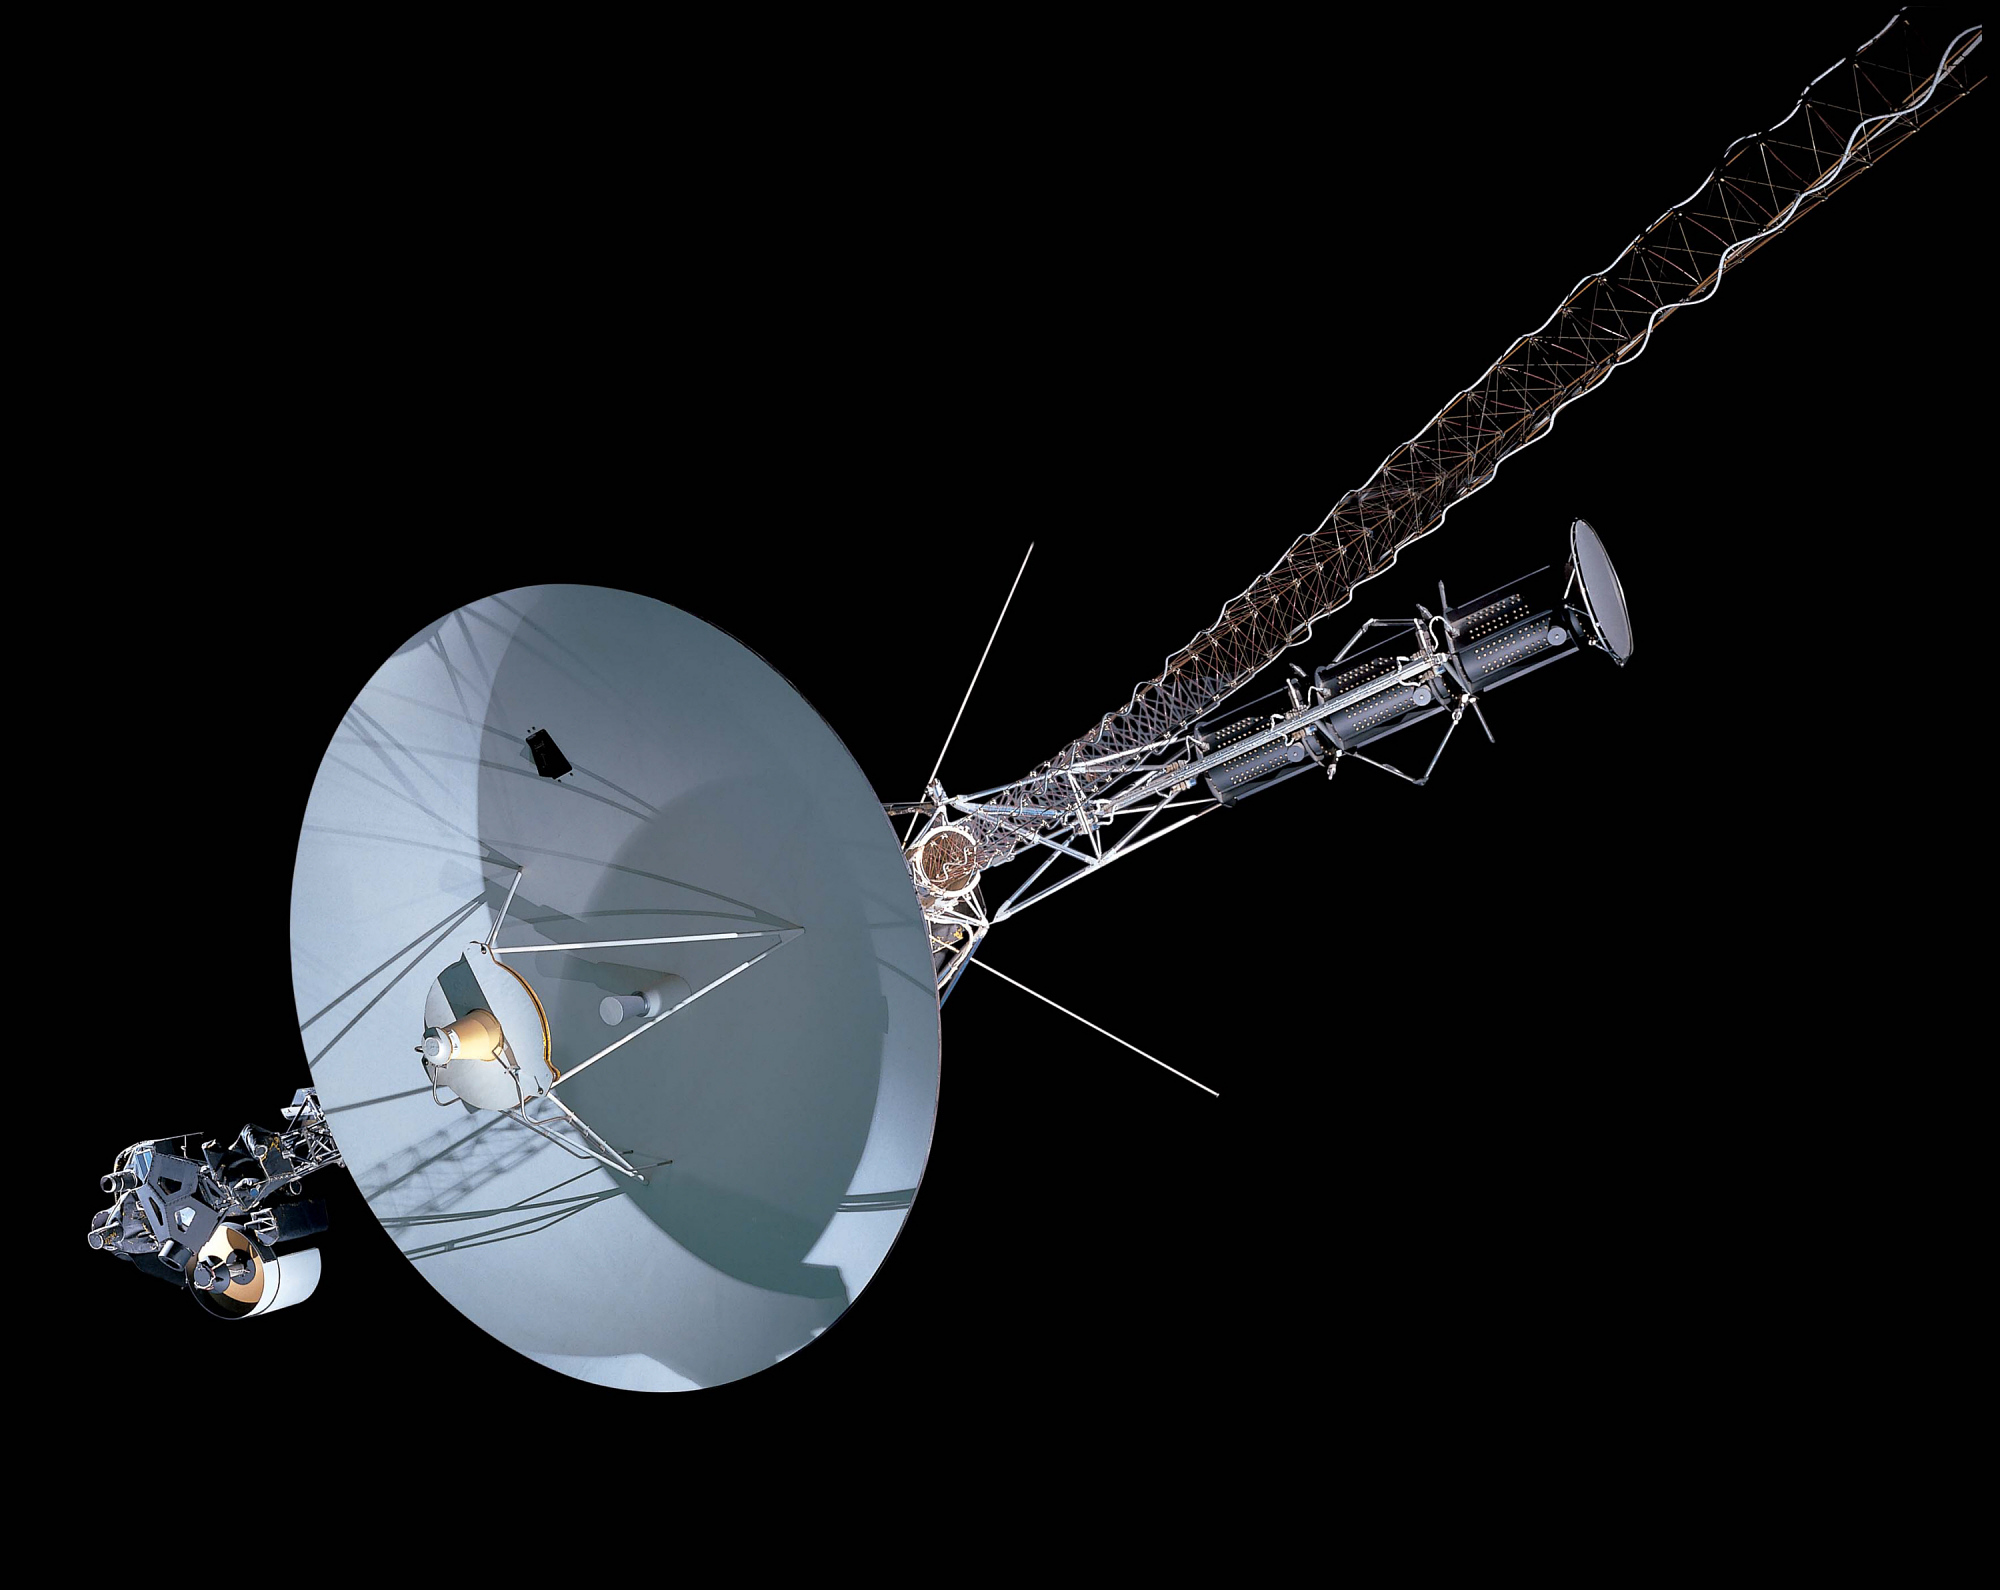 Voyager Spacecraft, Courtesy National Air and Space Museum